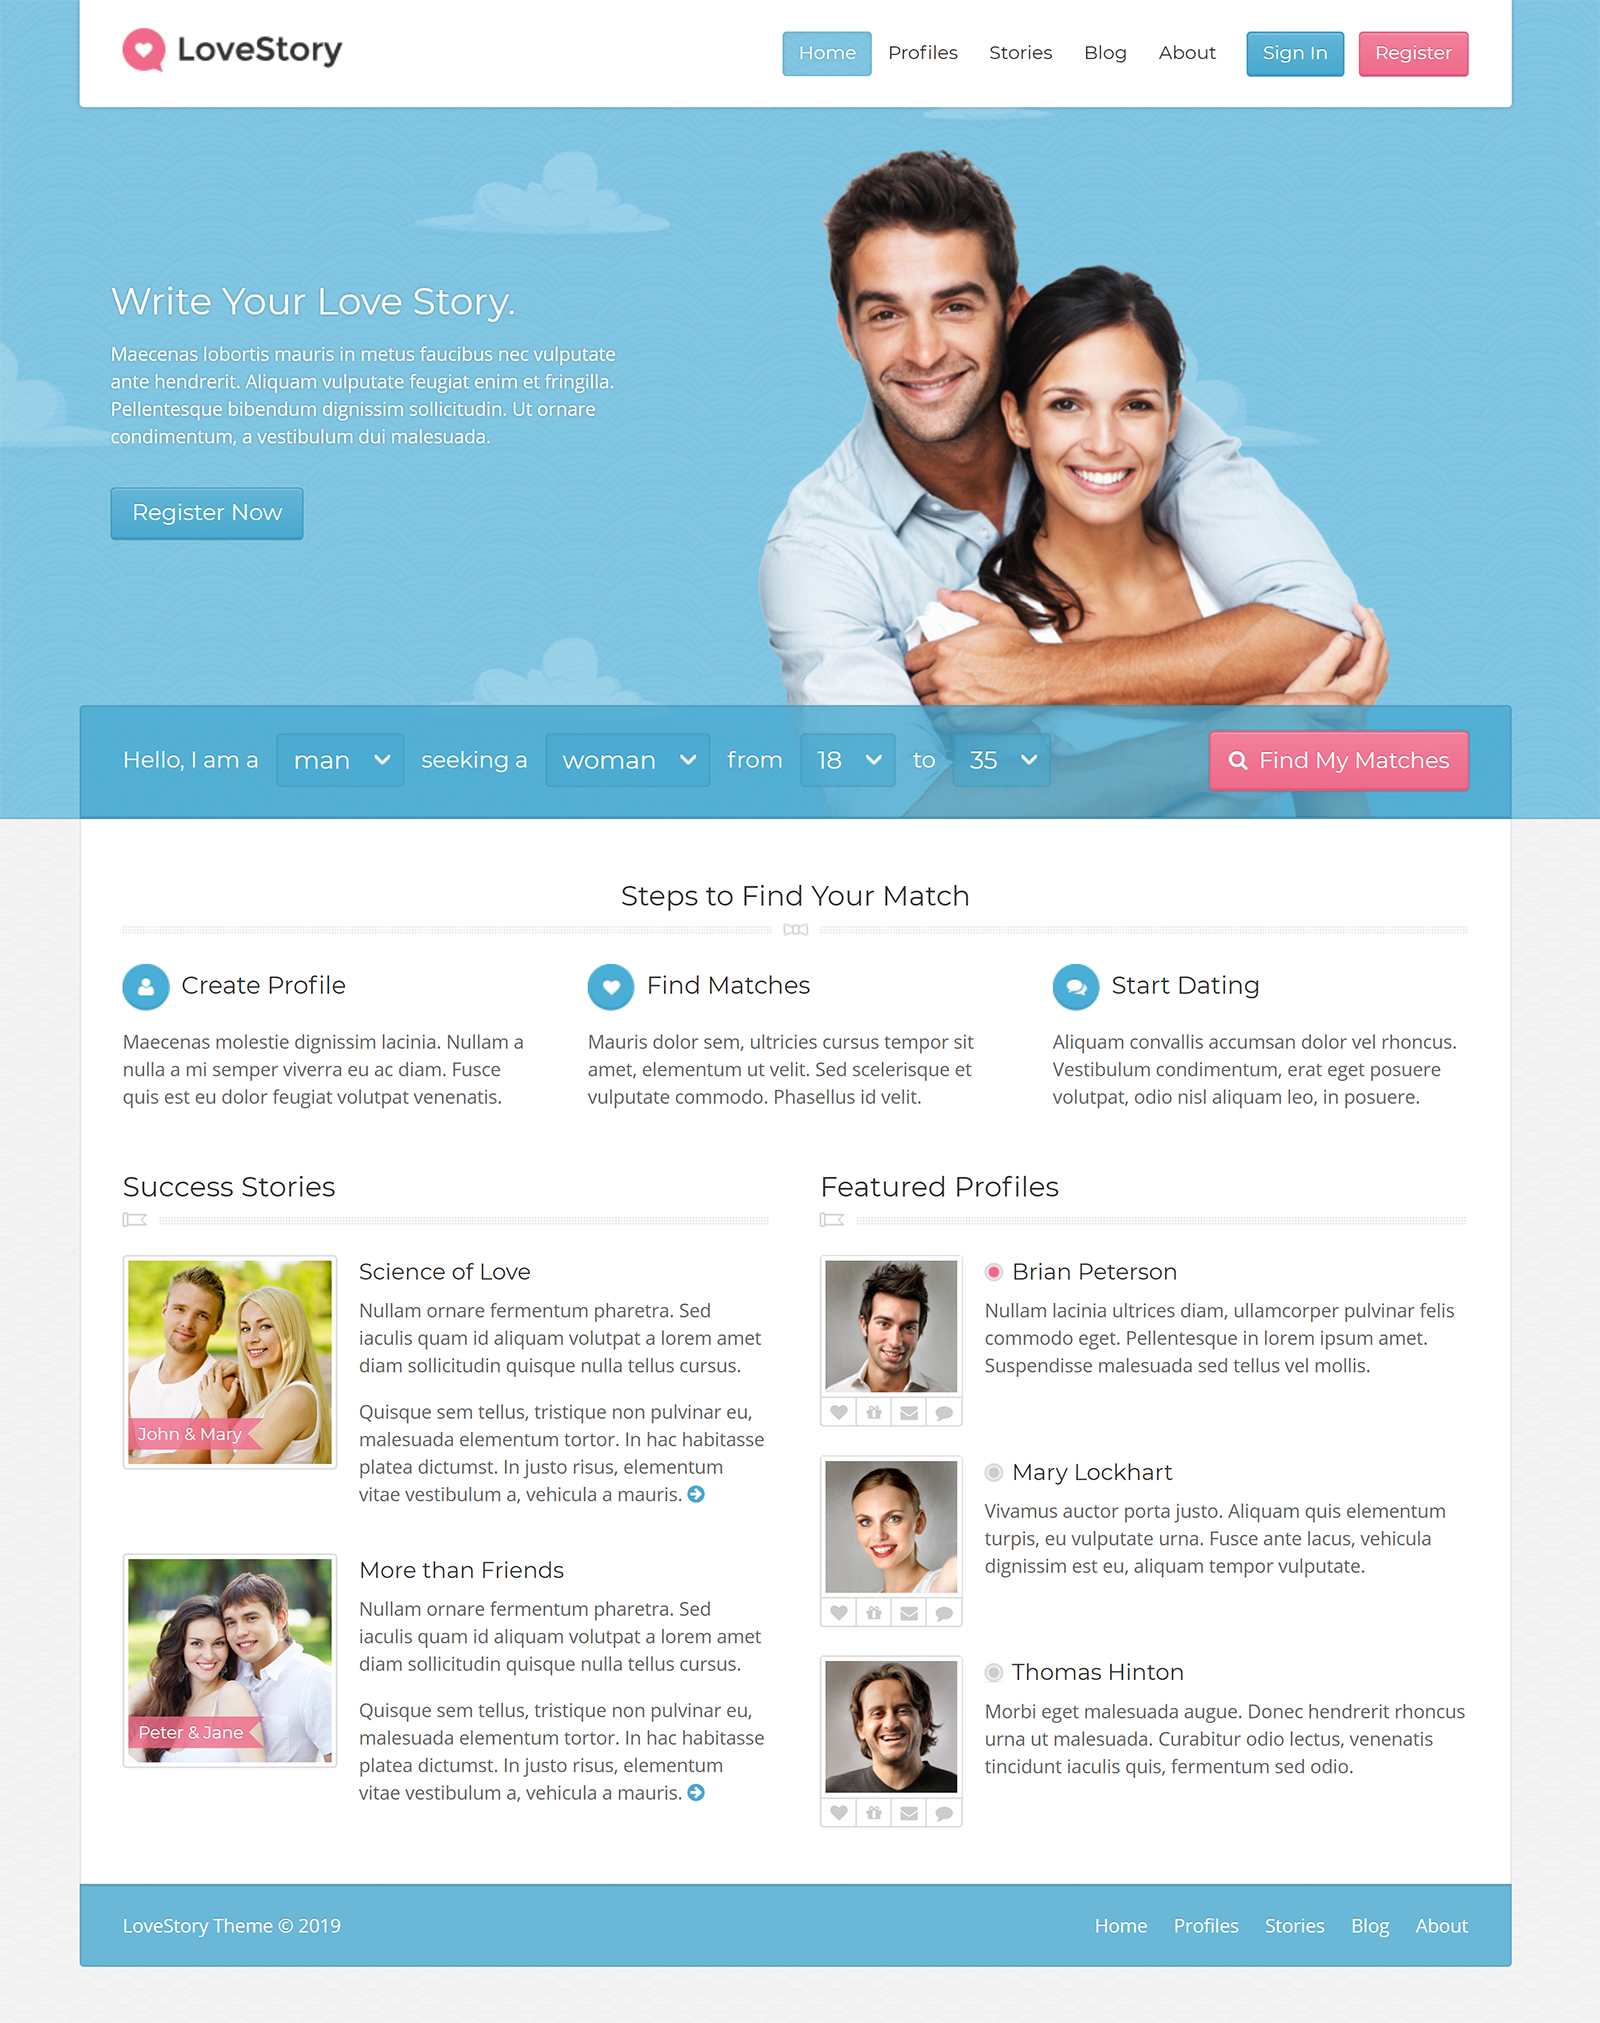 LoveStory WordPress Theme